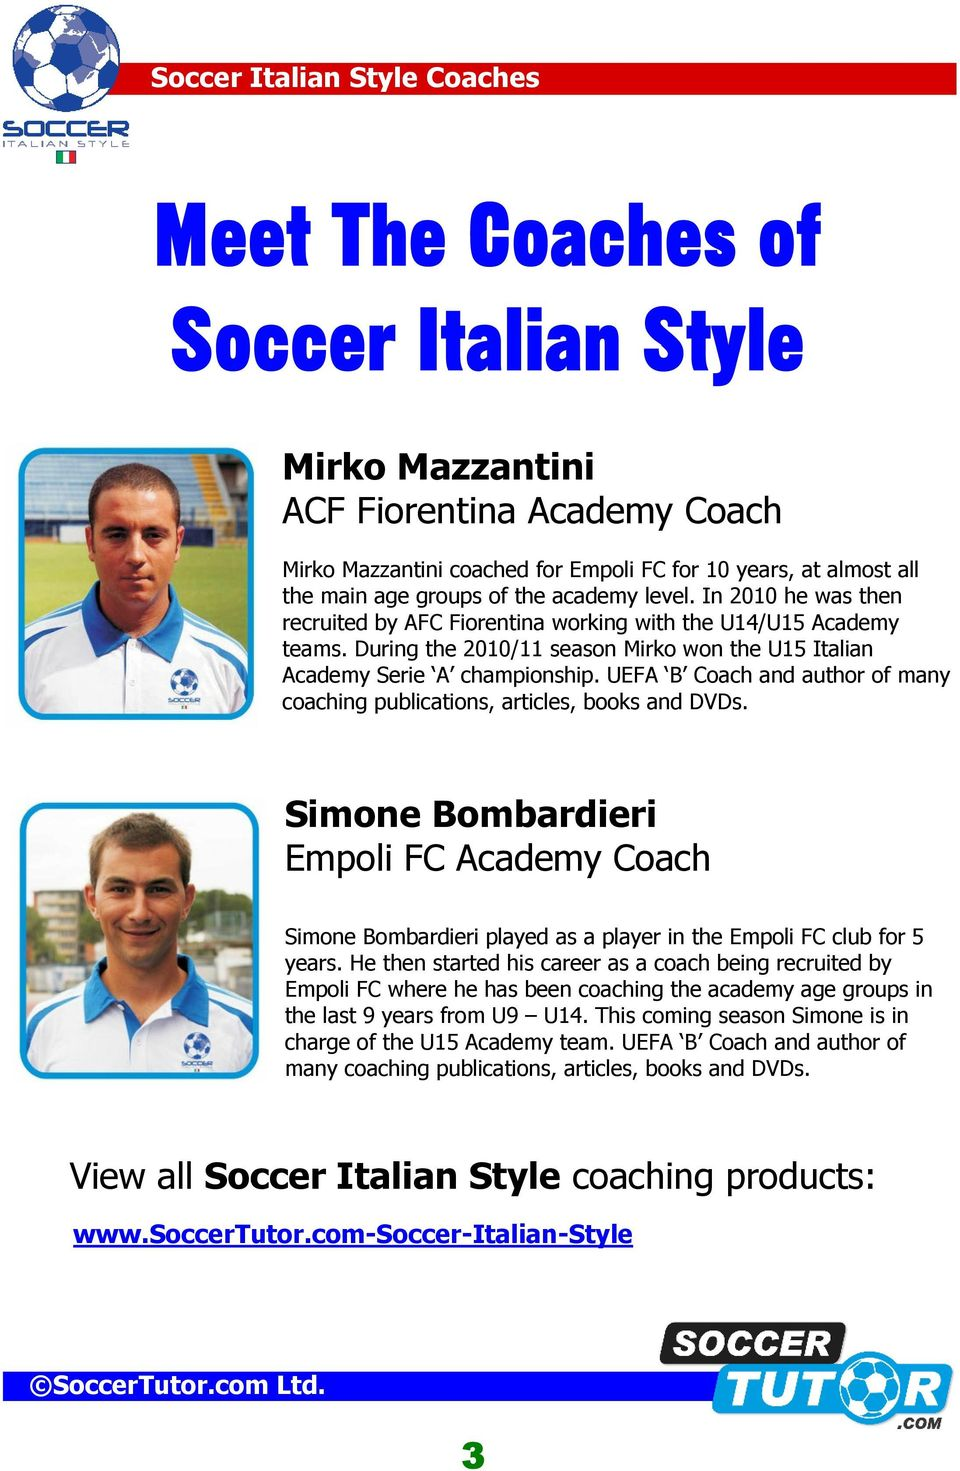 UEFA B Coach and author of many coaching publications, articles, books and DVDs. Simone Bombardieri Empoli FC Academy Coach Simone Bombardieri played as a player in the Empoli FC club for 5 years.